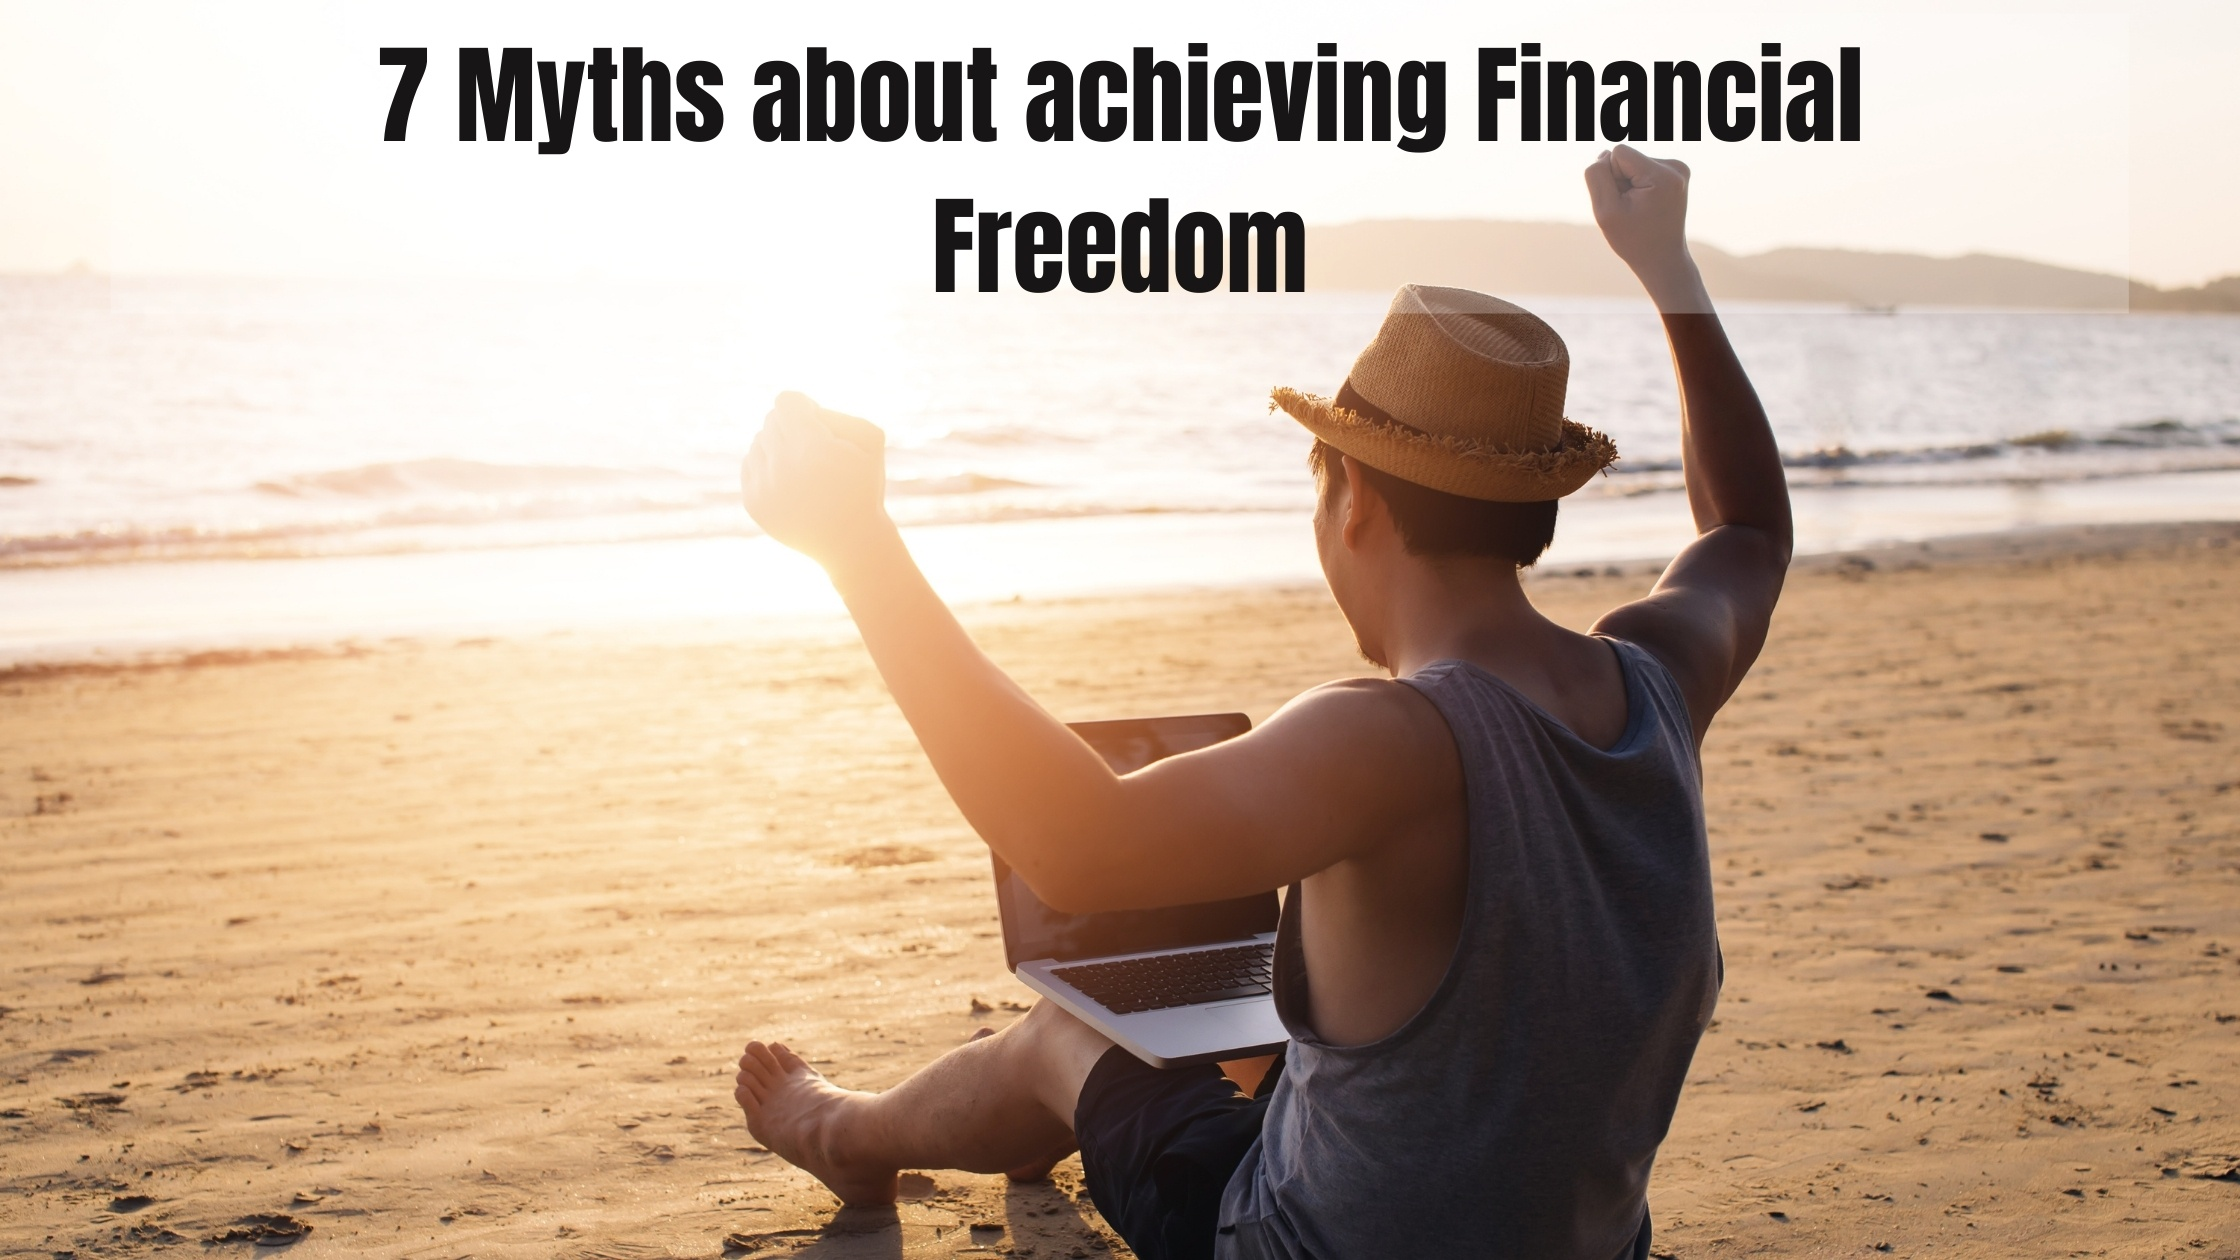 7 Myths about achieving Financial Freedom